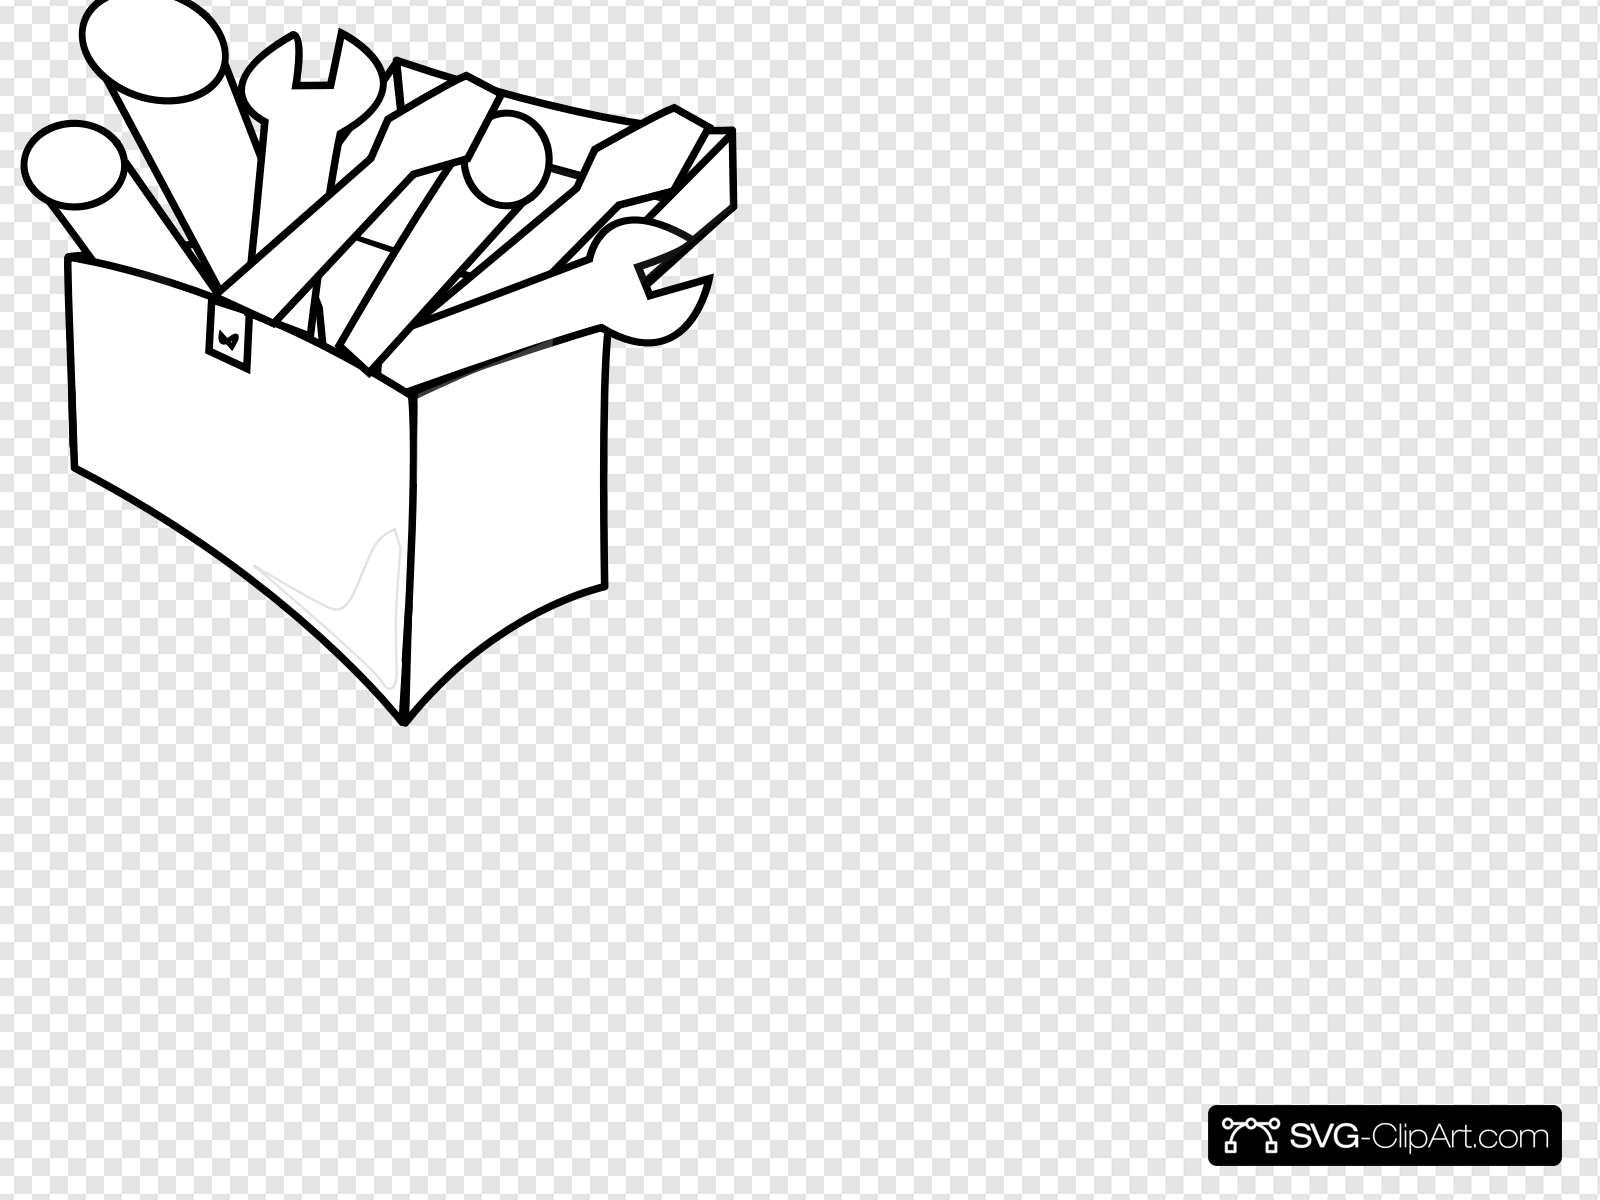 White Tool Box Clip art, Icon and SVG.